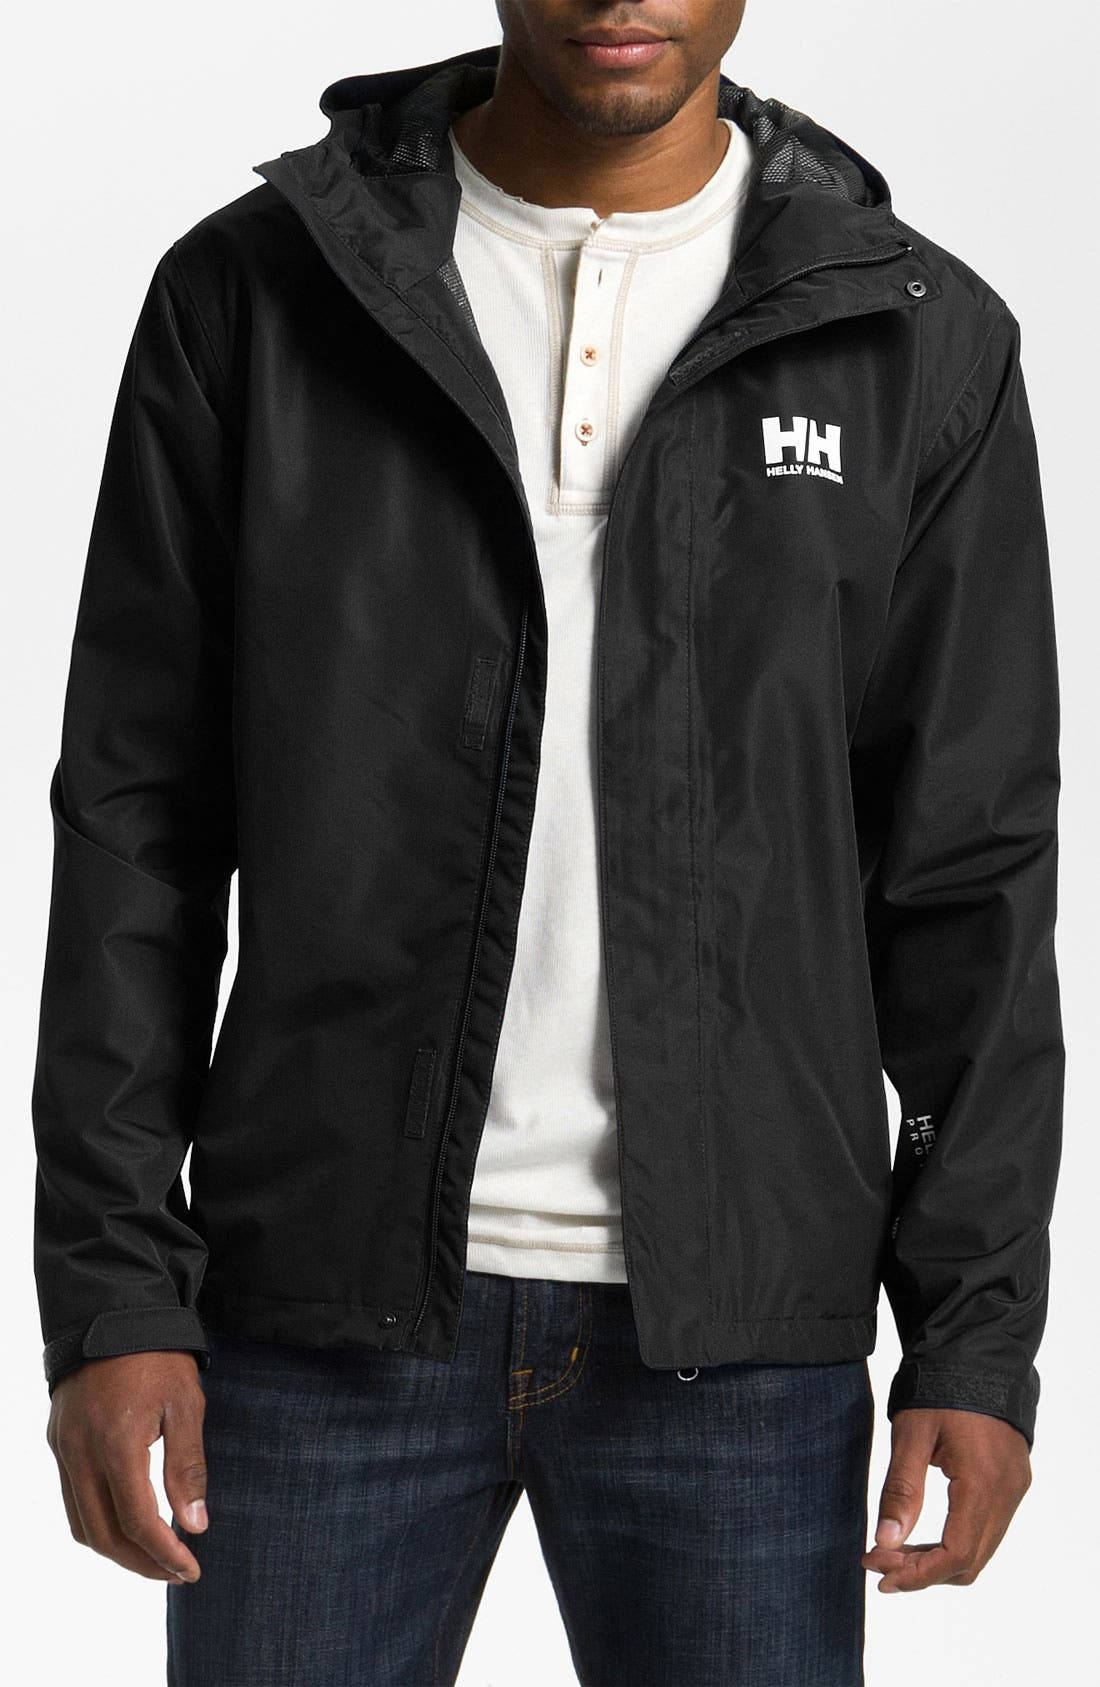 Helly Hansen 'Seven J' Waterproof & Windproof Jacket